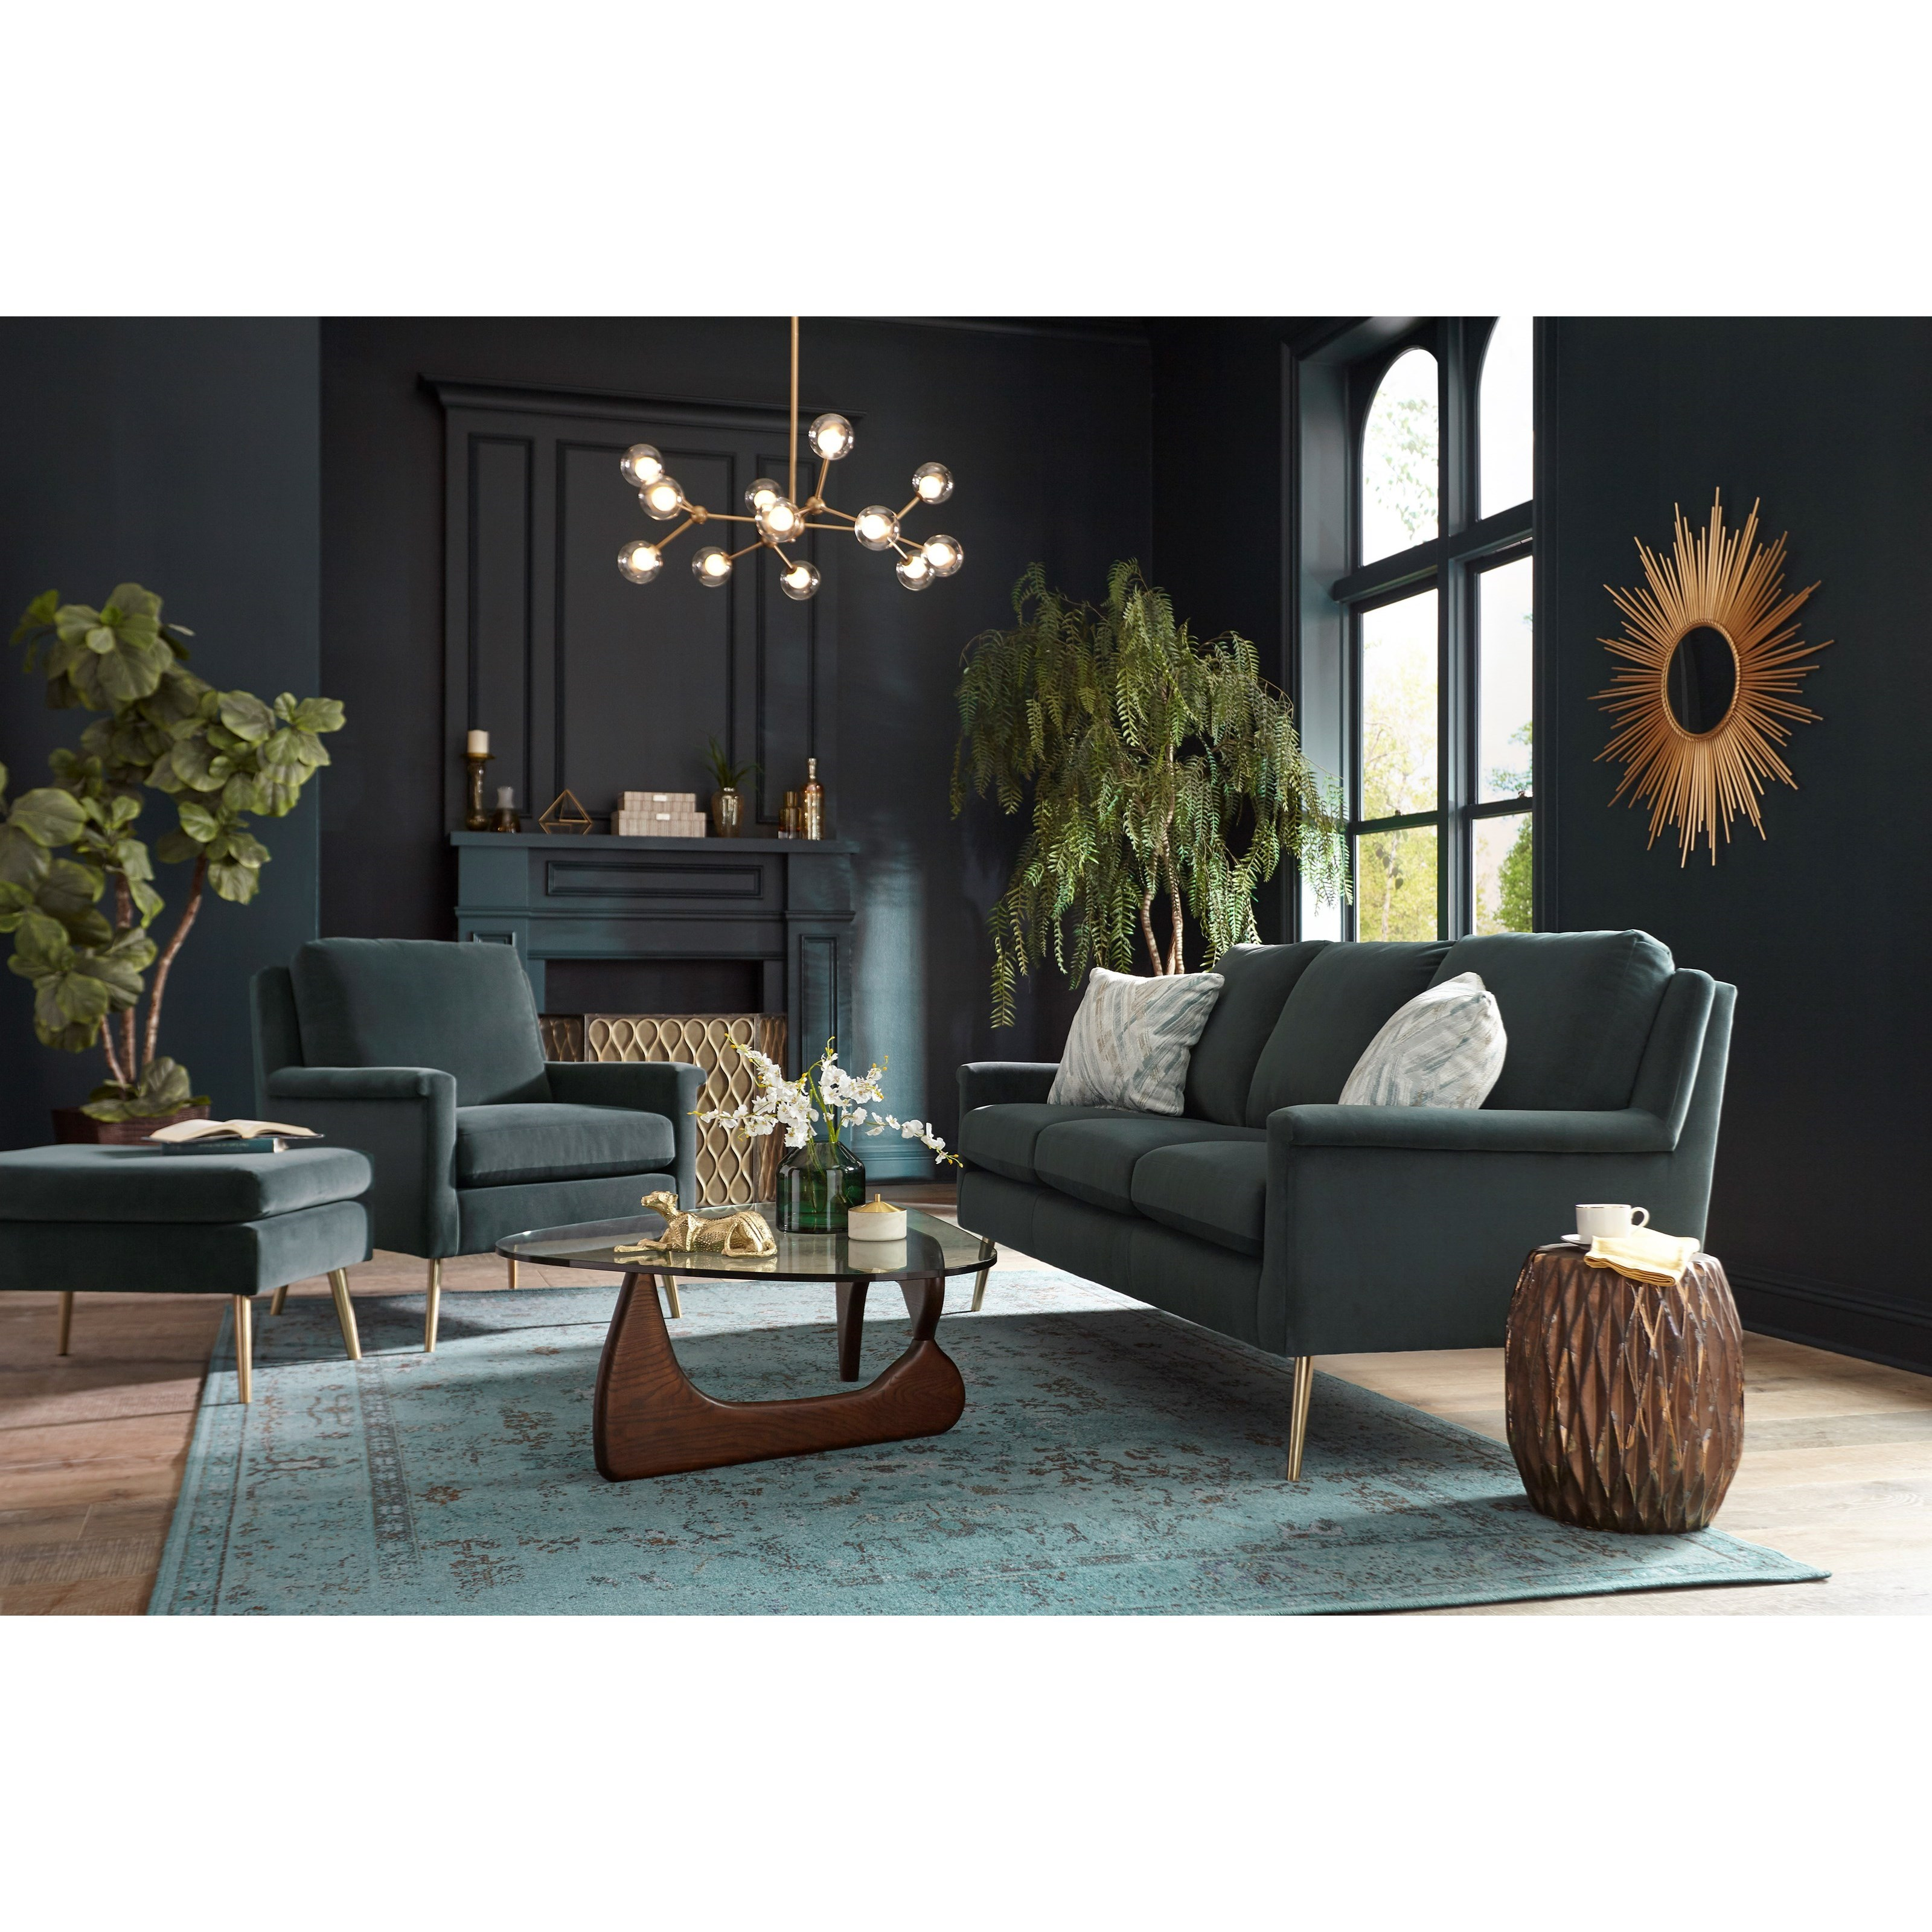 Dacey Living Room Group by Best Home Furnishings at SuperStore